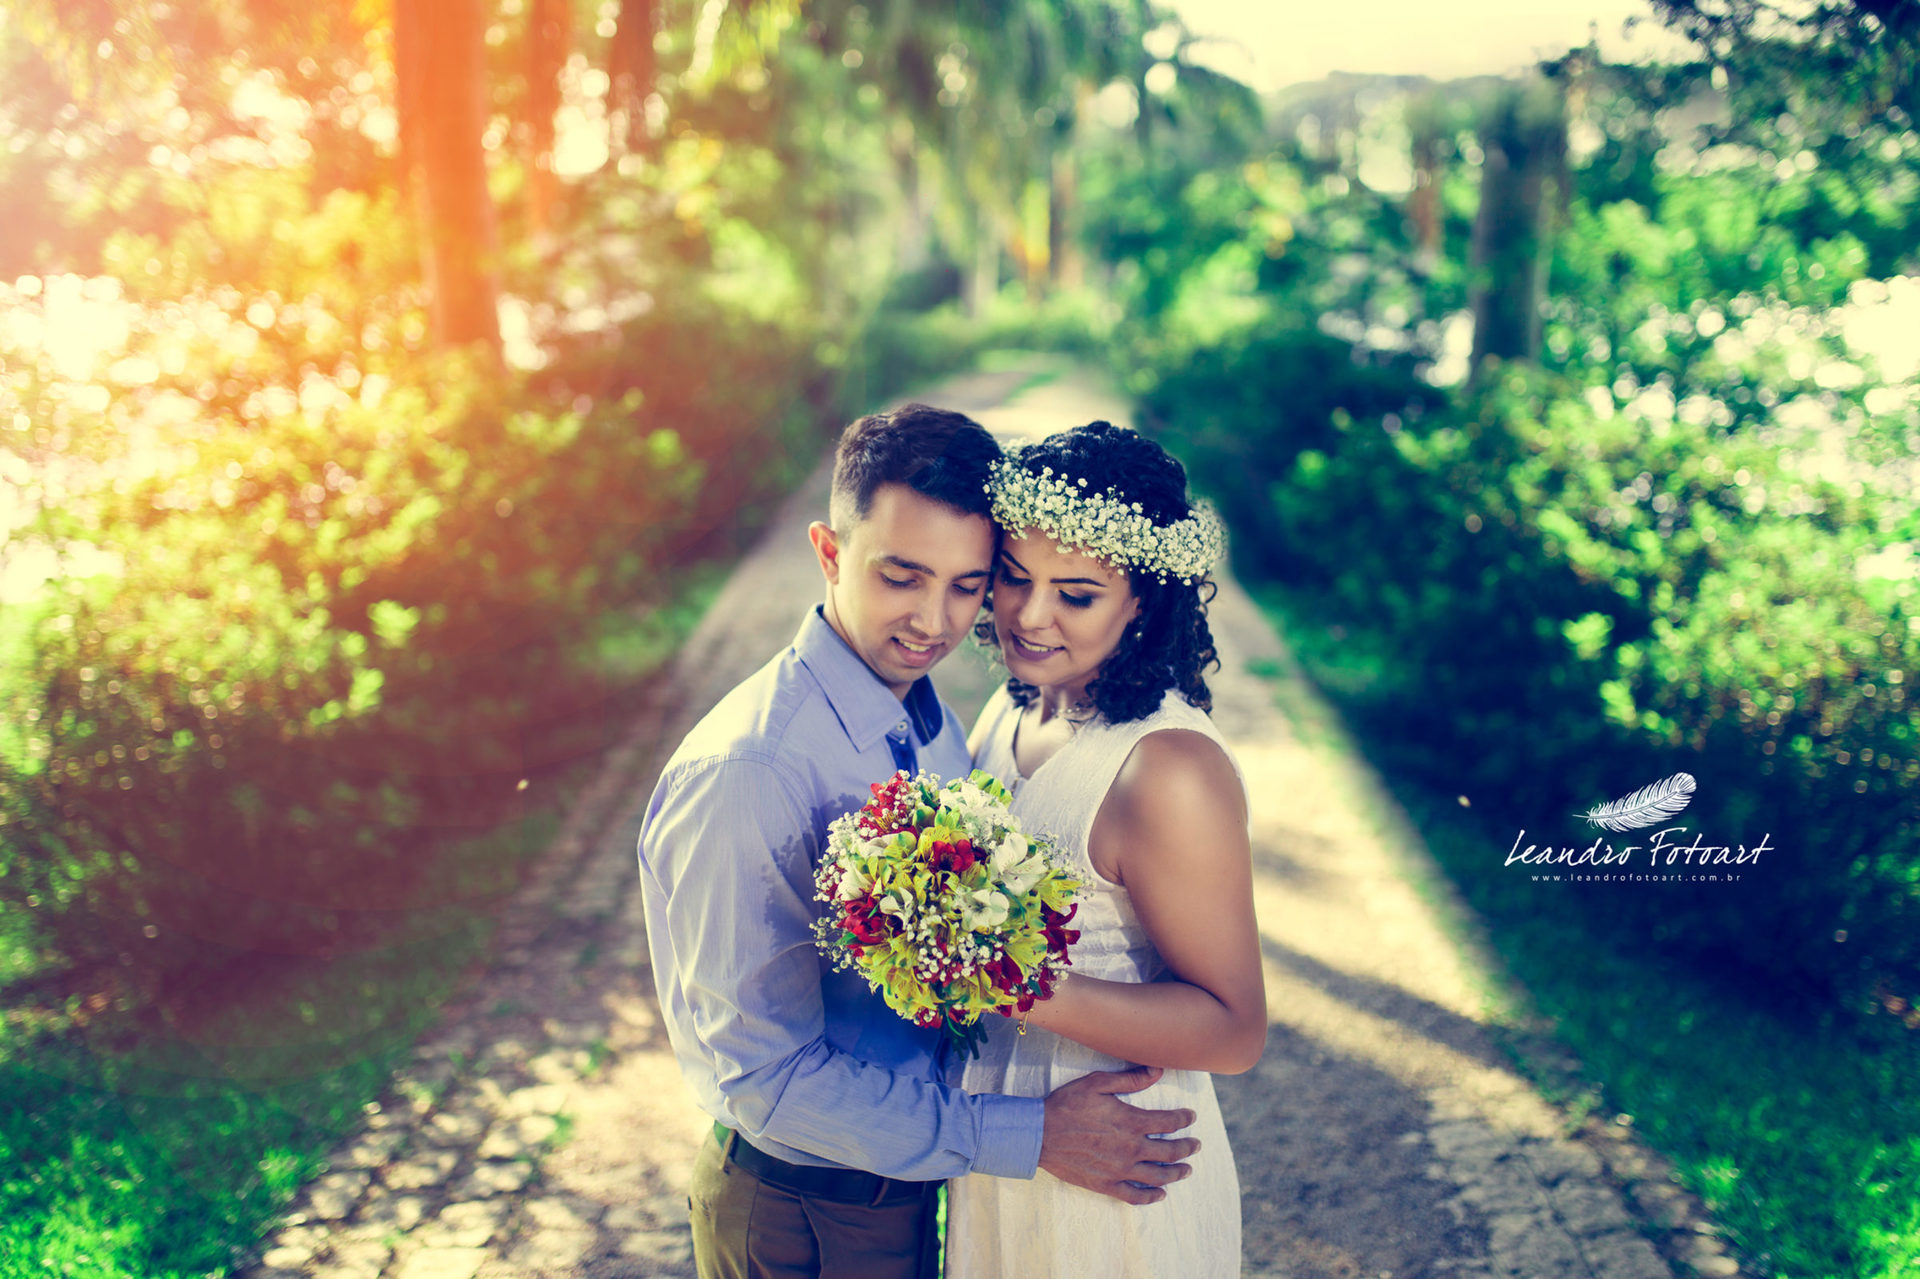 Mayara + Johnatan - PRE WEDDING